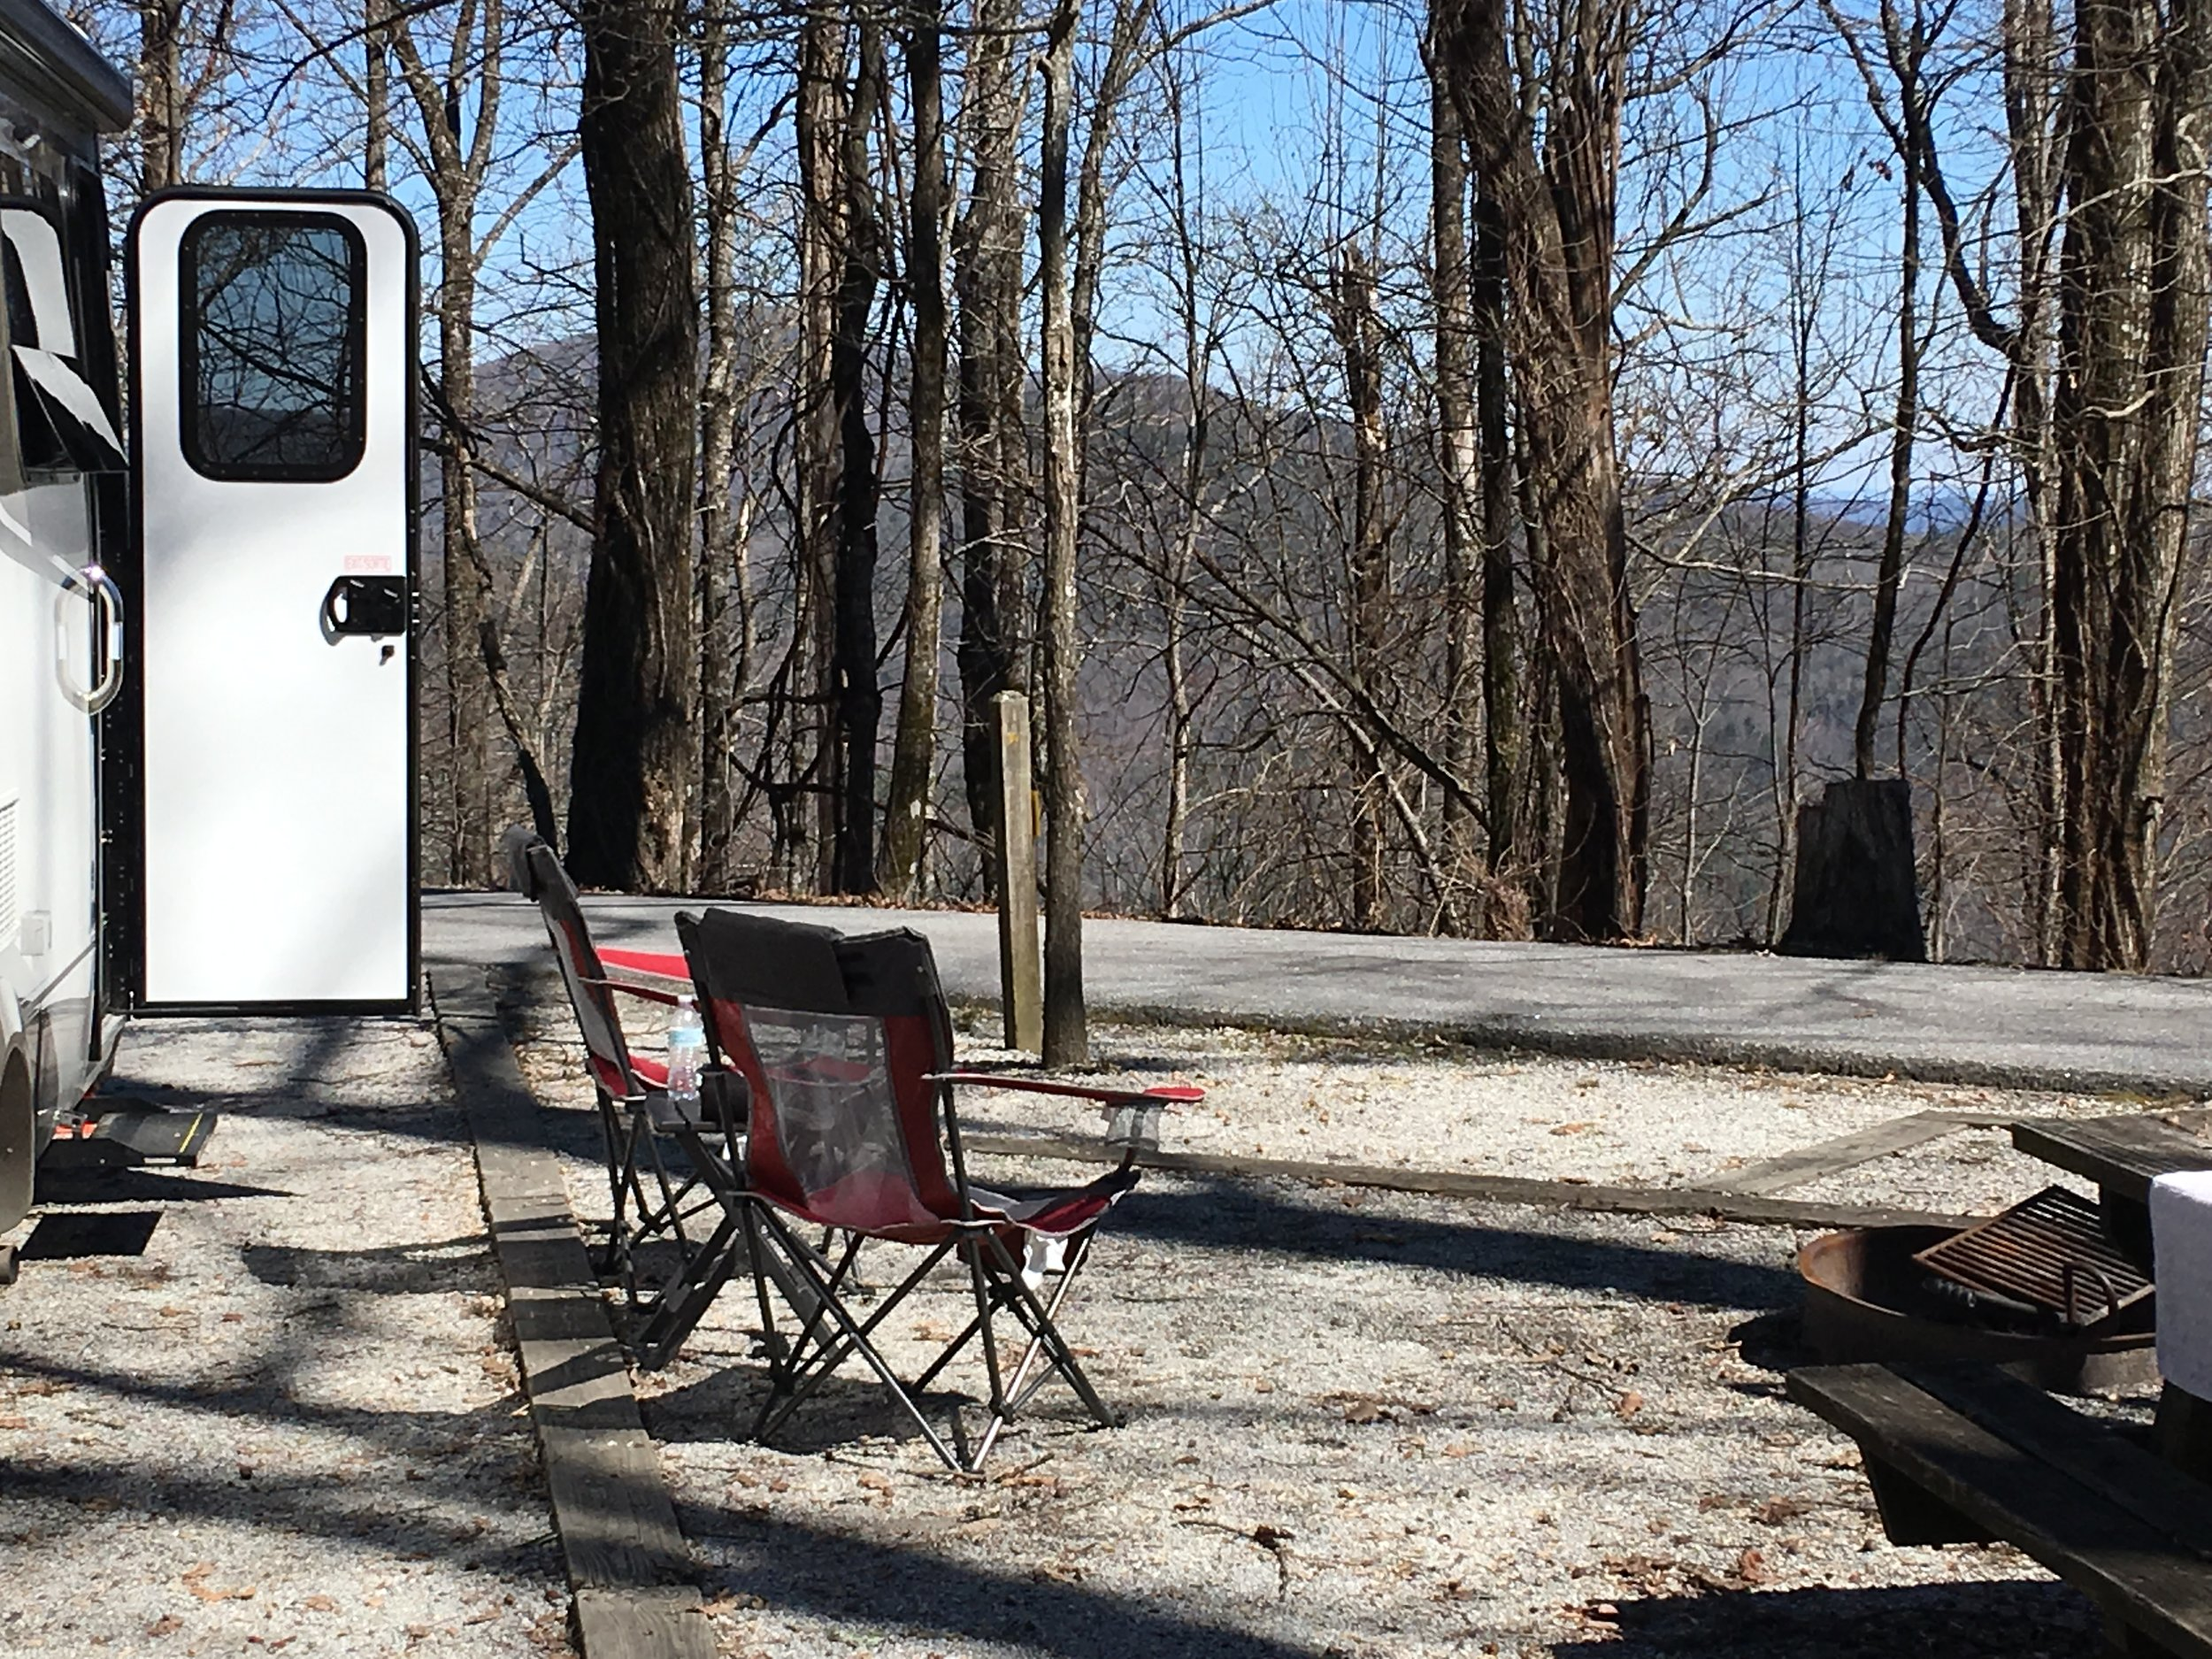 Campsite at Black Rock Mountain State Park